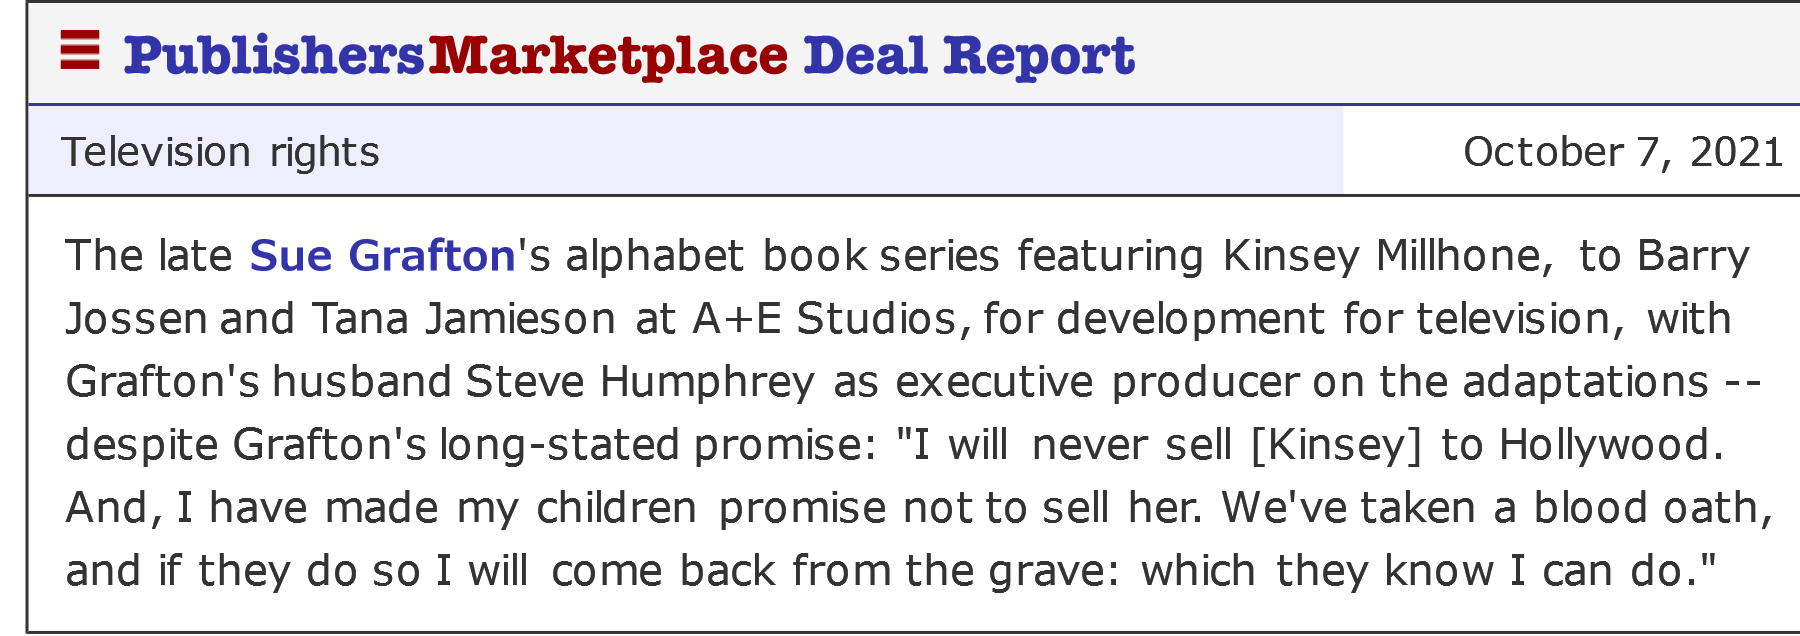 Publisher's Marketplace announcement for the Sue Grafton adaptations.